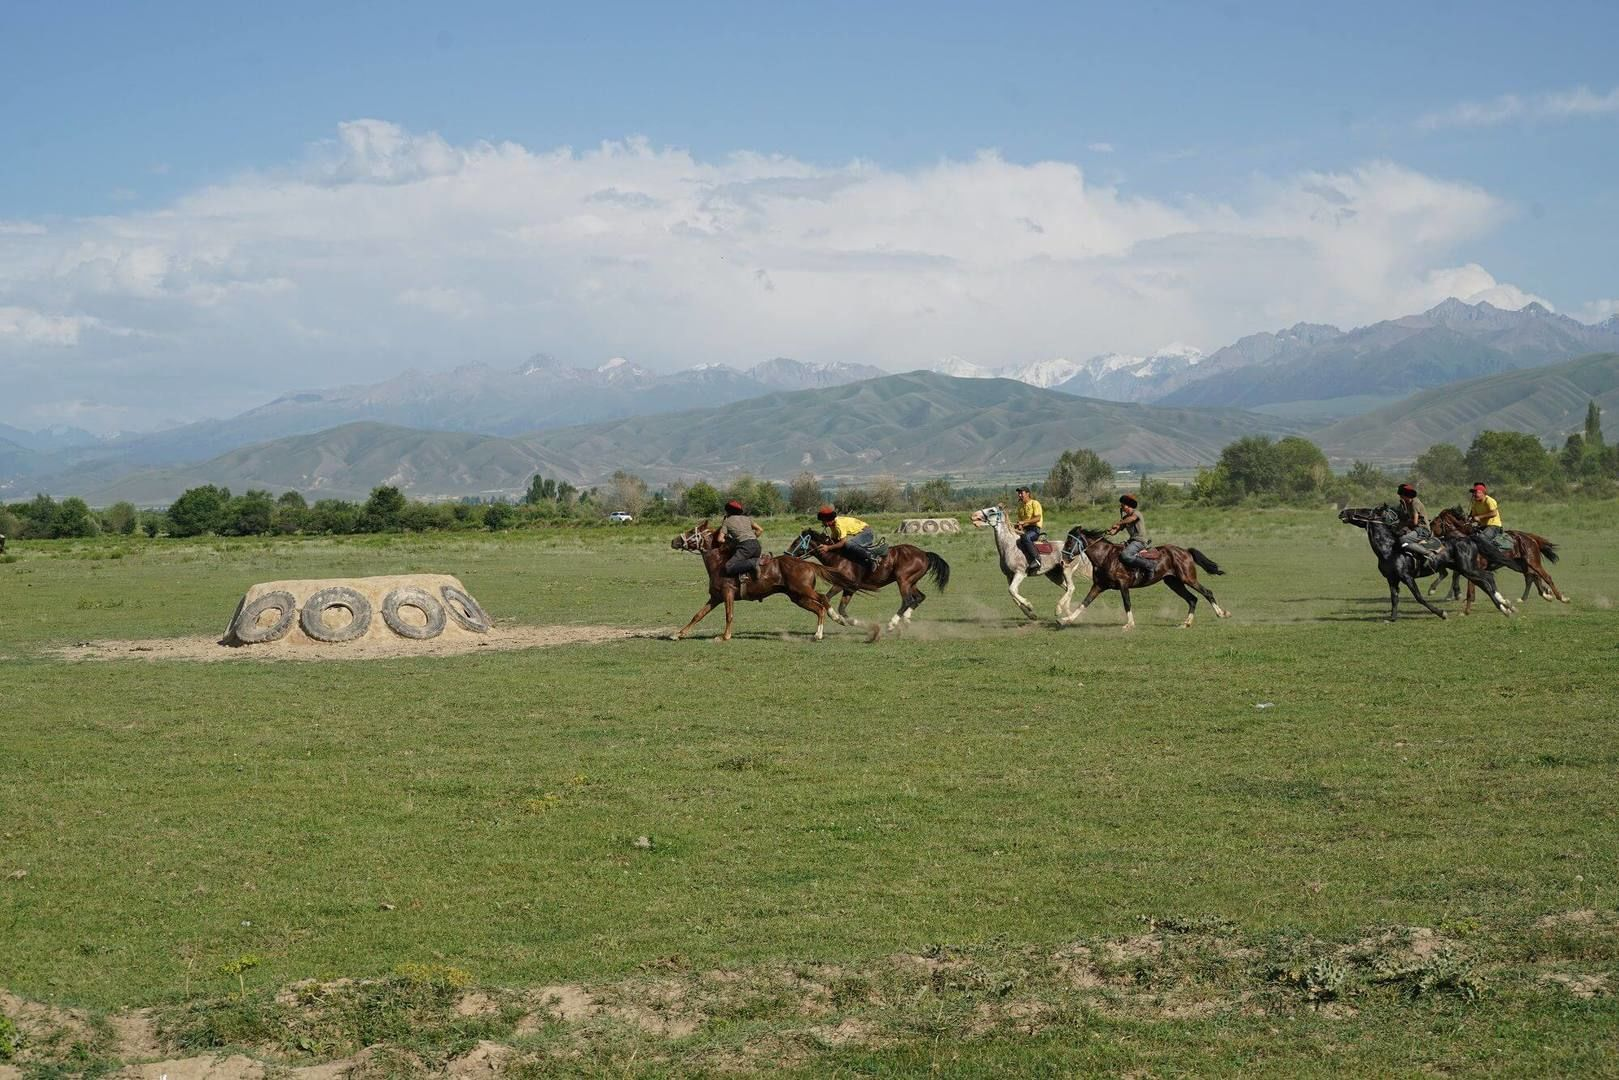 active tour horse riding and horse games in kyrgyzstan, central asia travel